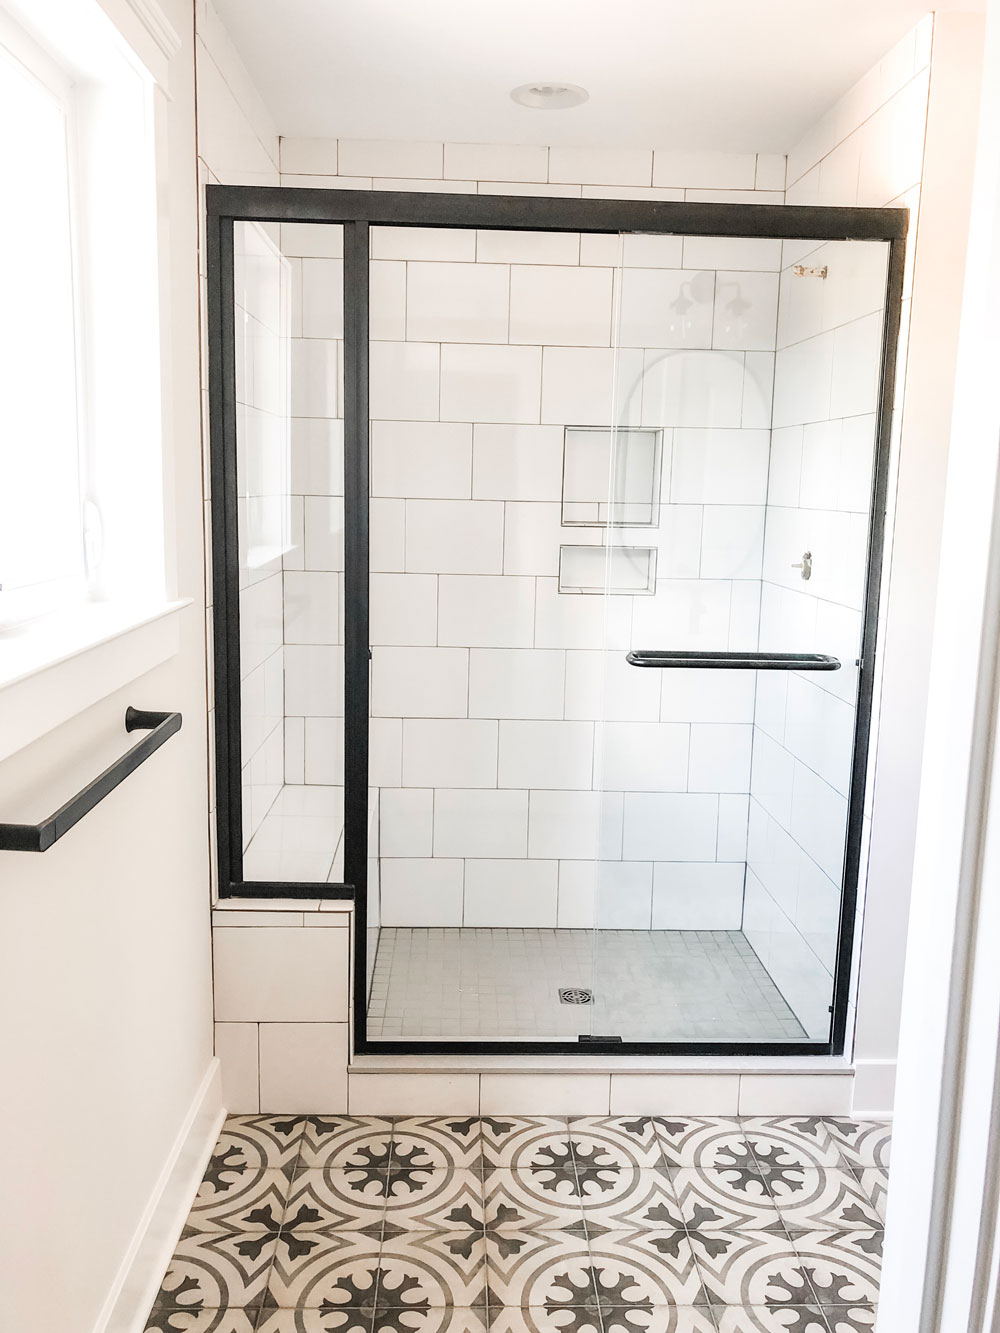 Custom home tour photos. This photo shows the master bath shower. It has a light gray floor tile and large white tiles laid in a subway pattern with gray grout. There is also a black semi-frameless shower door.